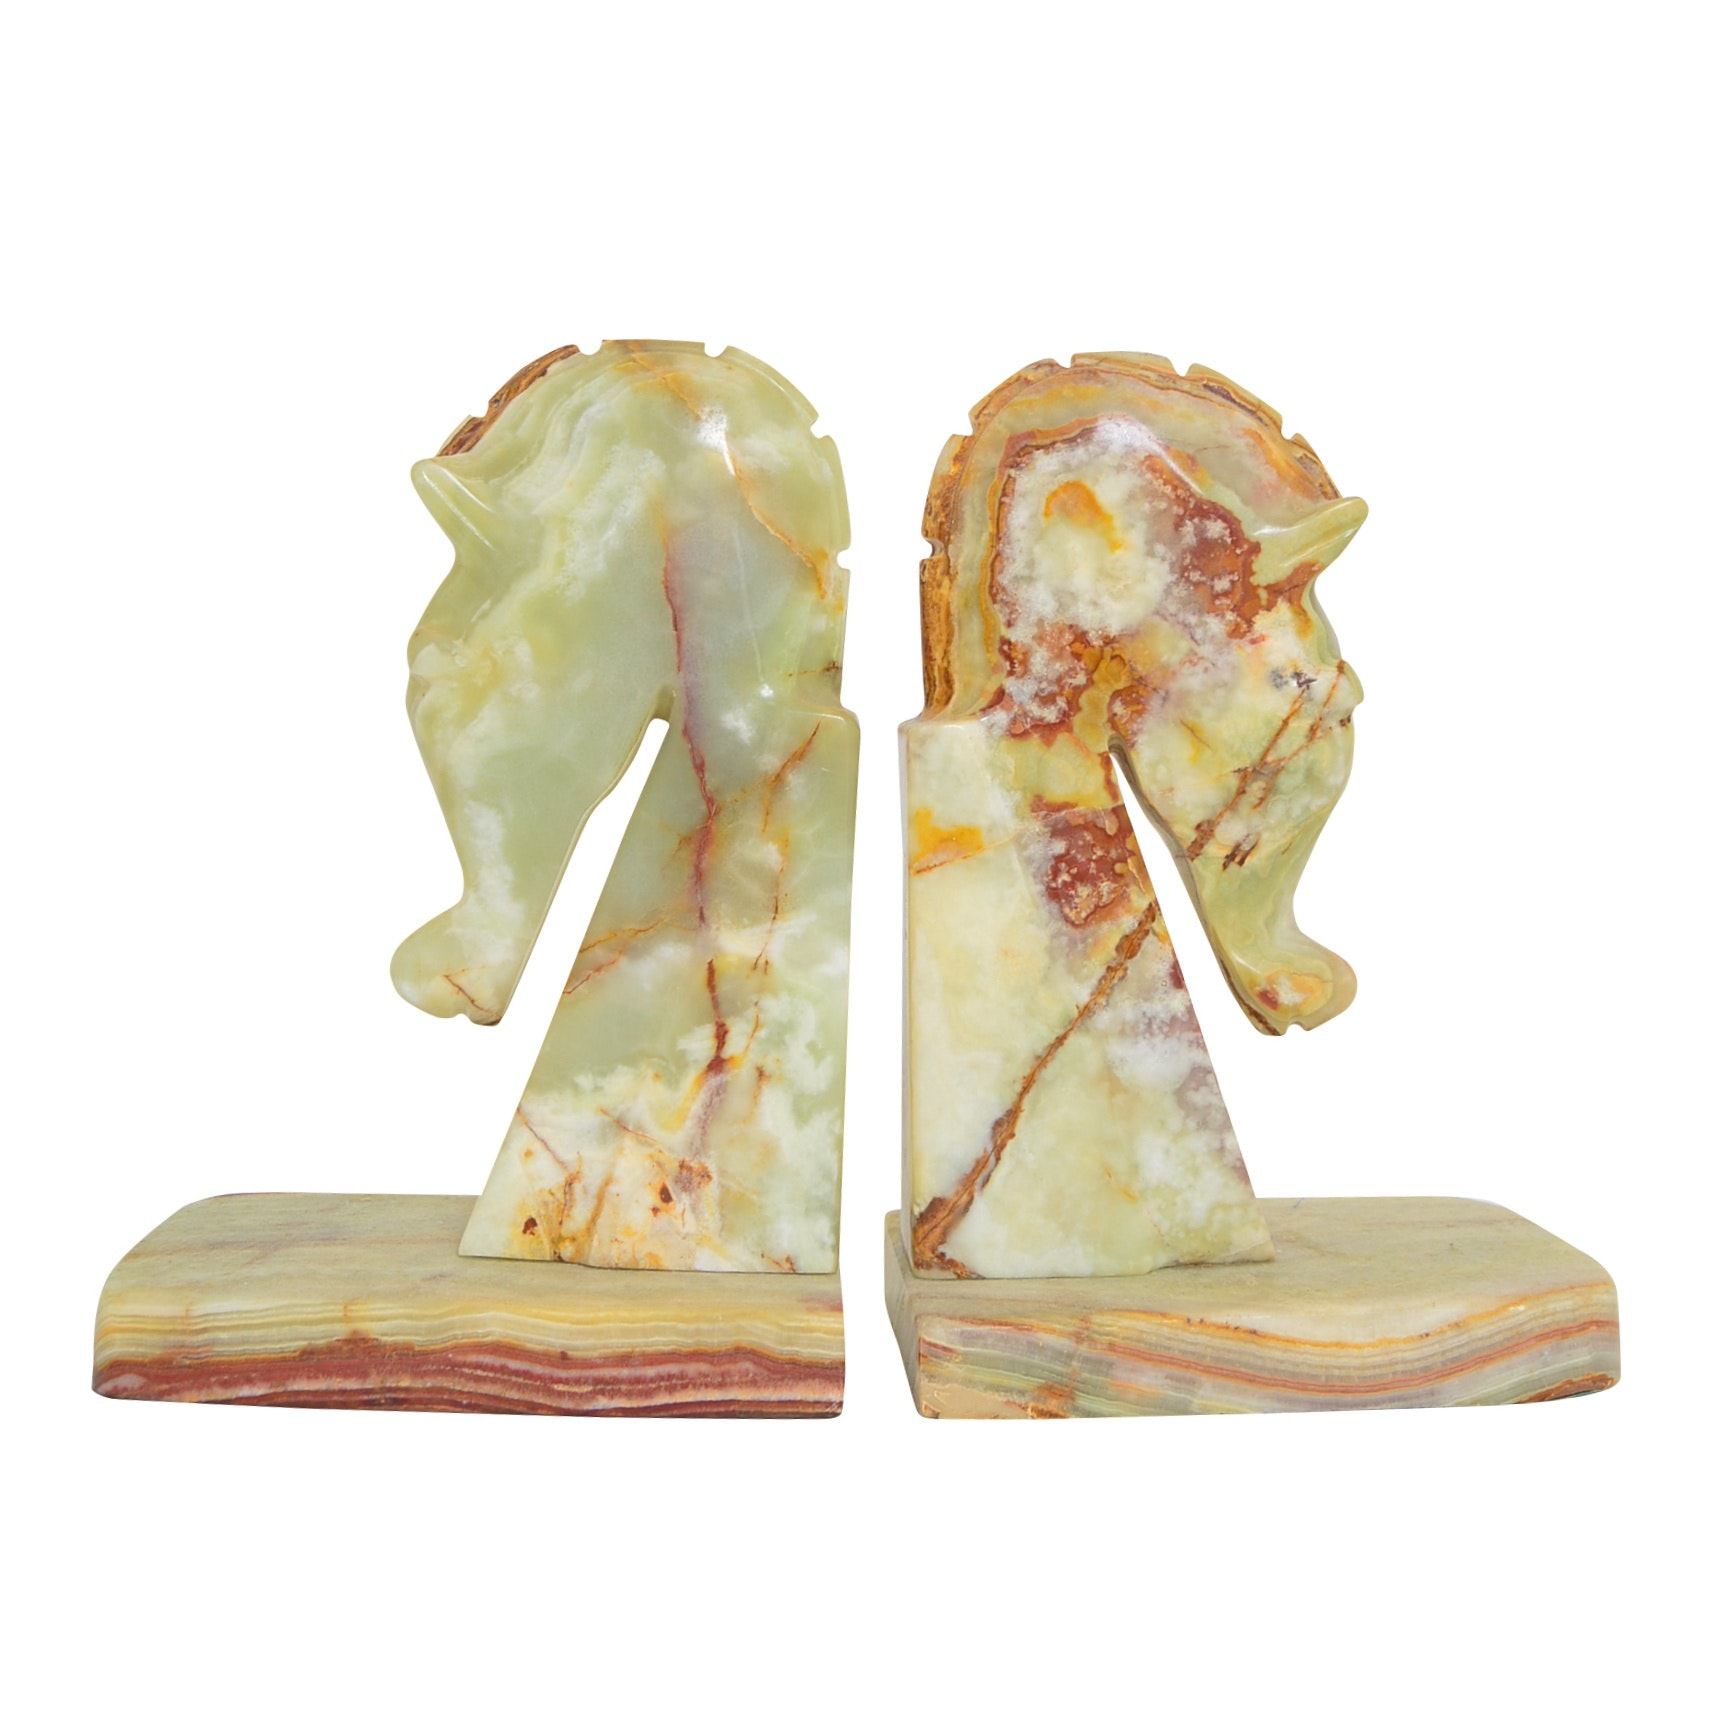 Neoclassic Style Onyx Trojan Horse Bookends